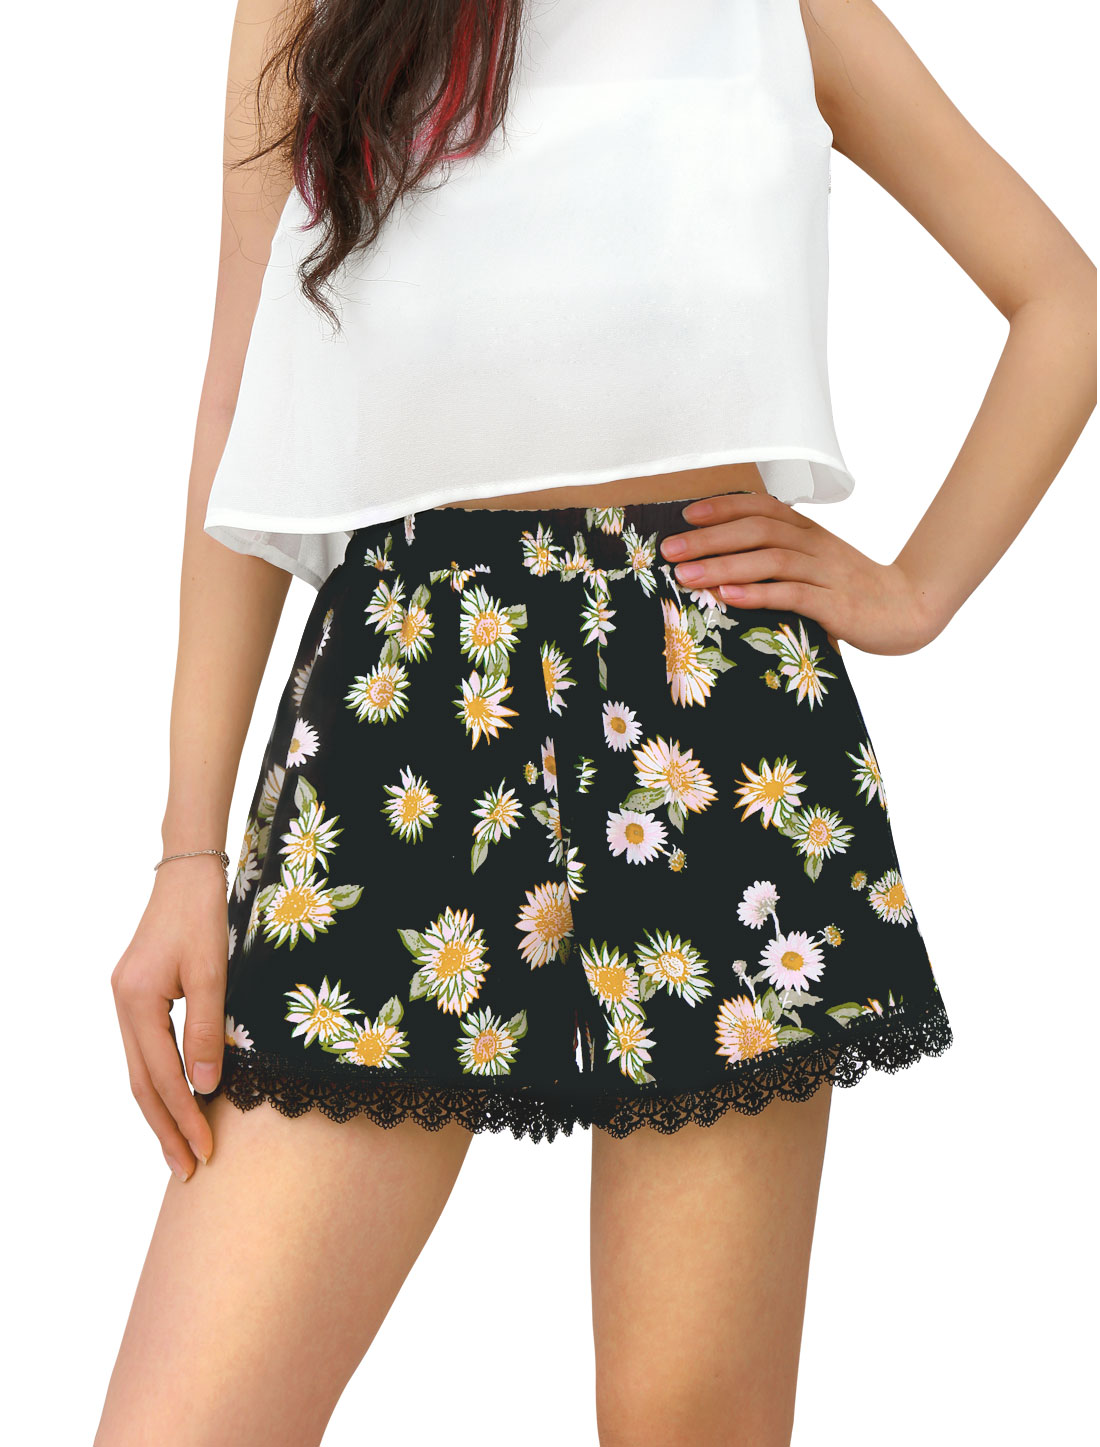 Women Lace Hem Panel Elastic Waist Flower Pattern Daisy Shorts Black